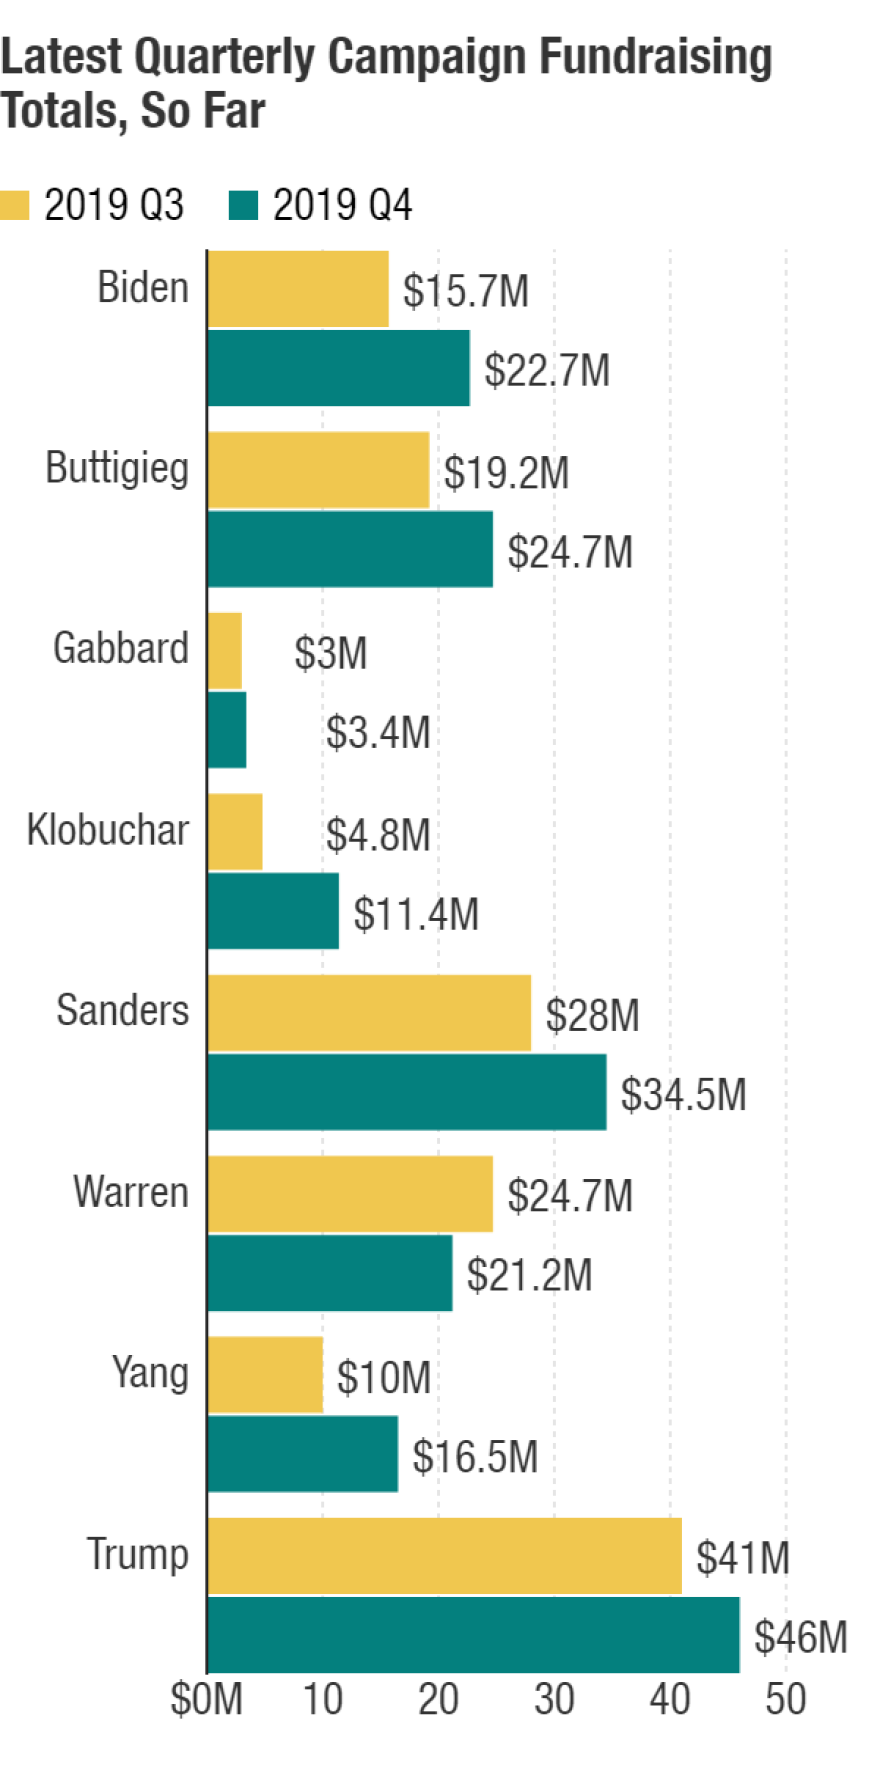 Fundraising totals, in millions of dollars, as of 10 a.m. ET on Jan. 3. Third-quarter totals are from Federal Election Commission data. Fourth-quarter totals are reported by the campaigns without providing official FEC filings.